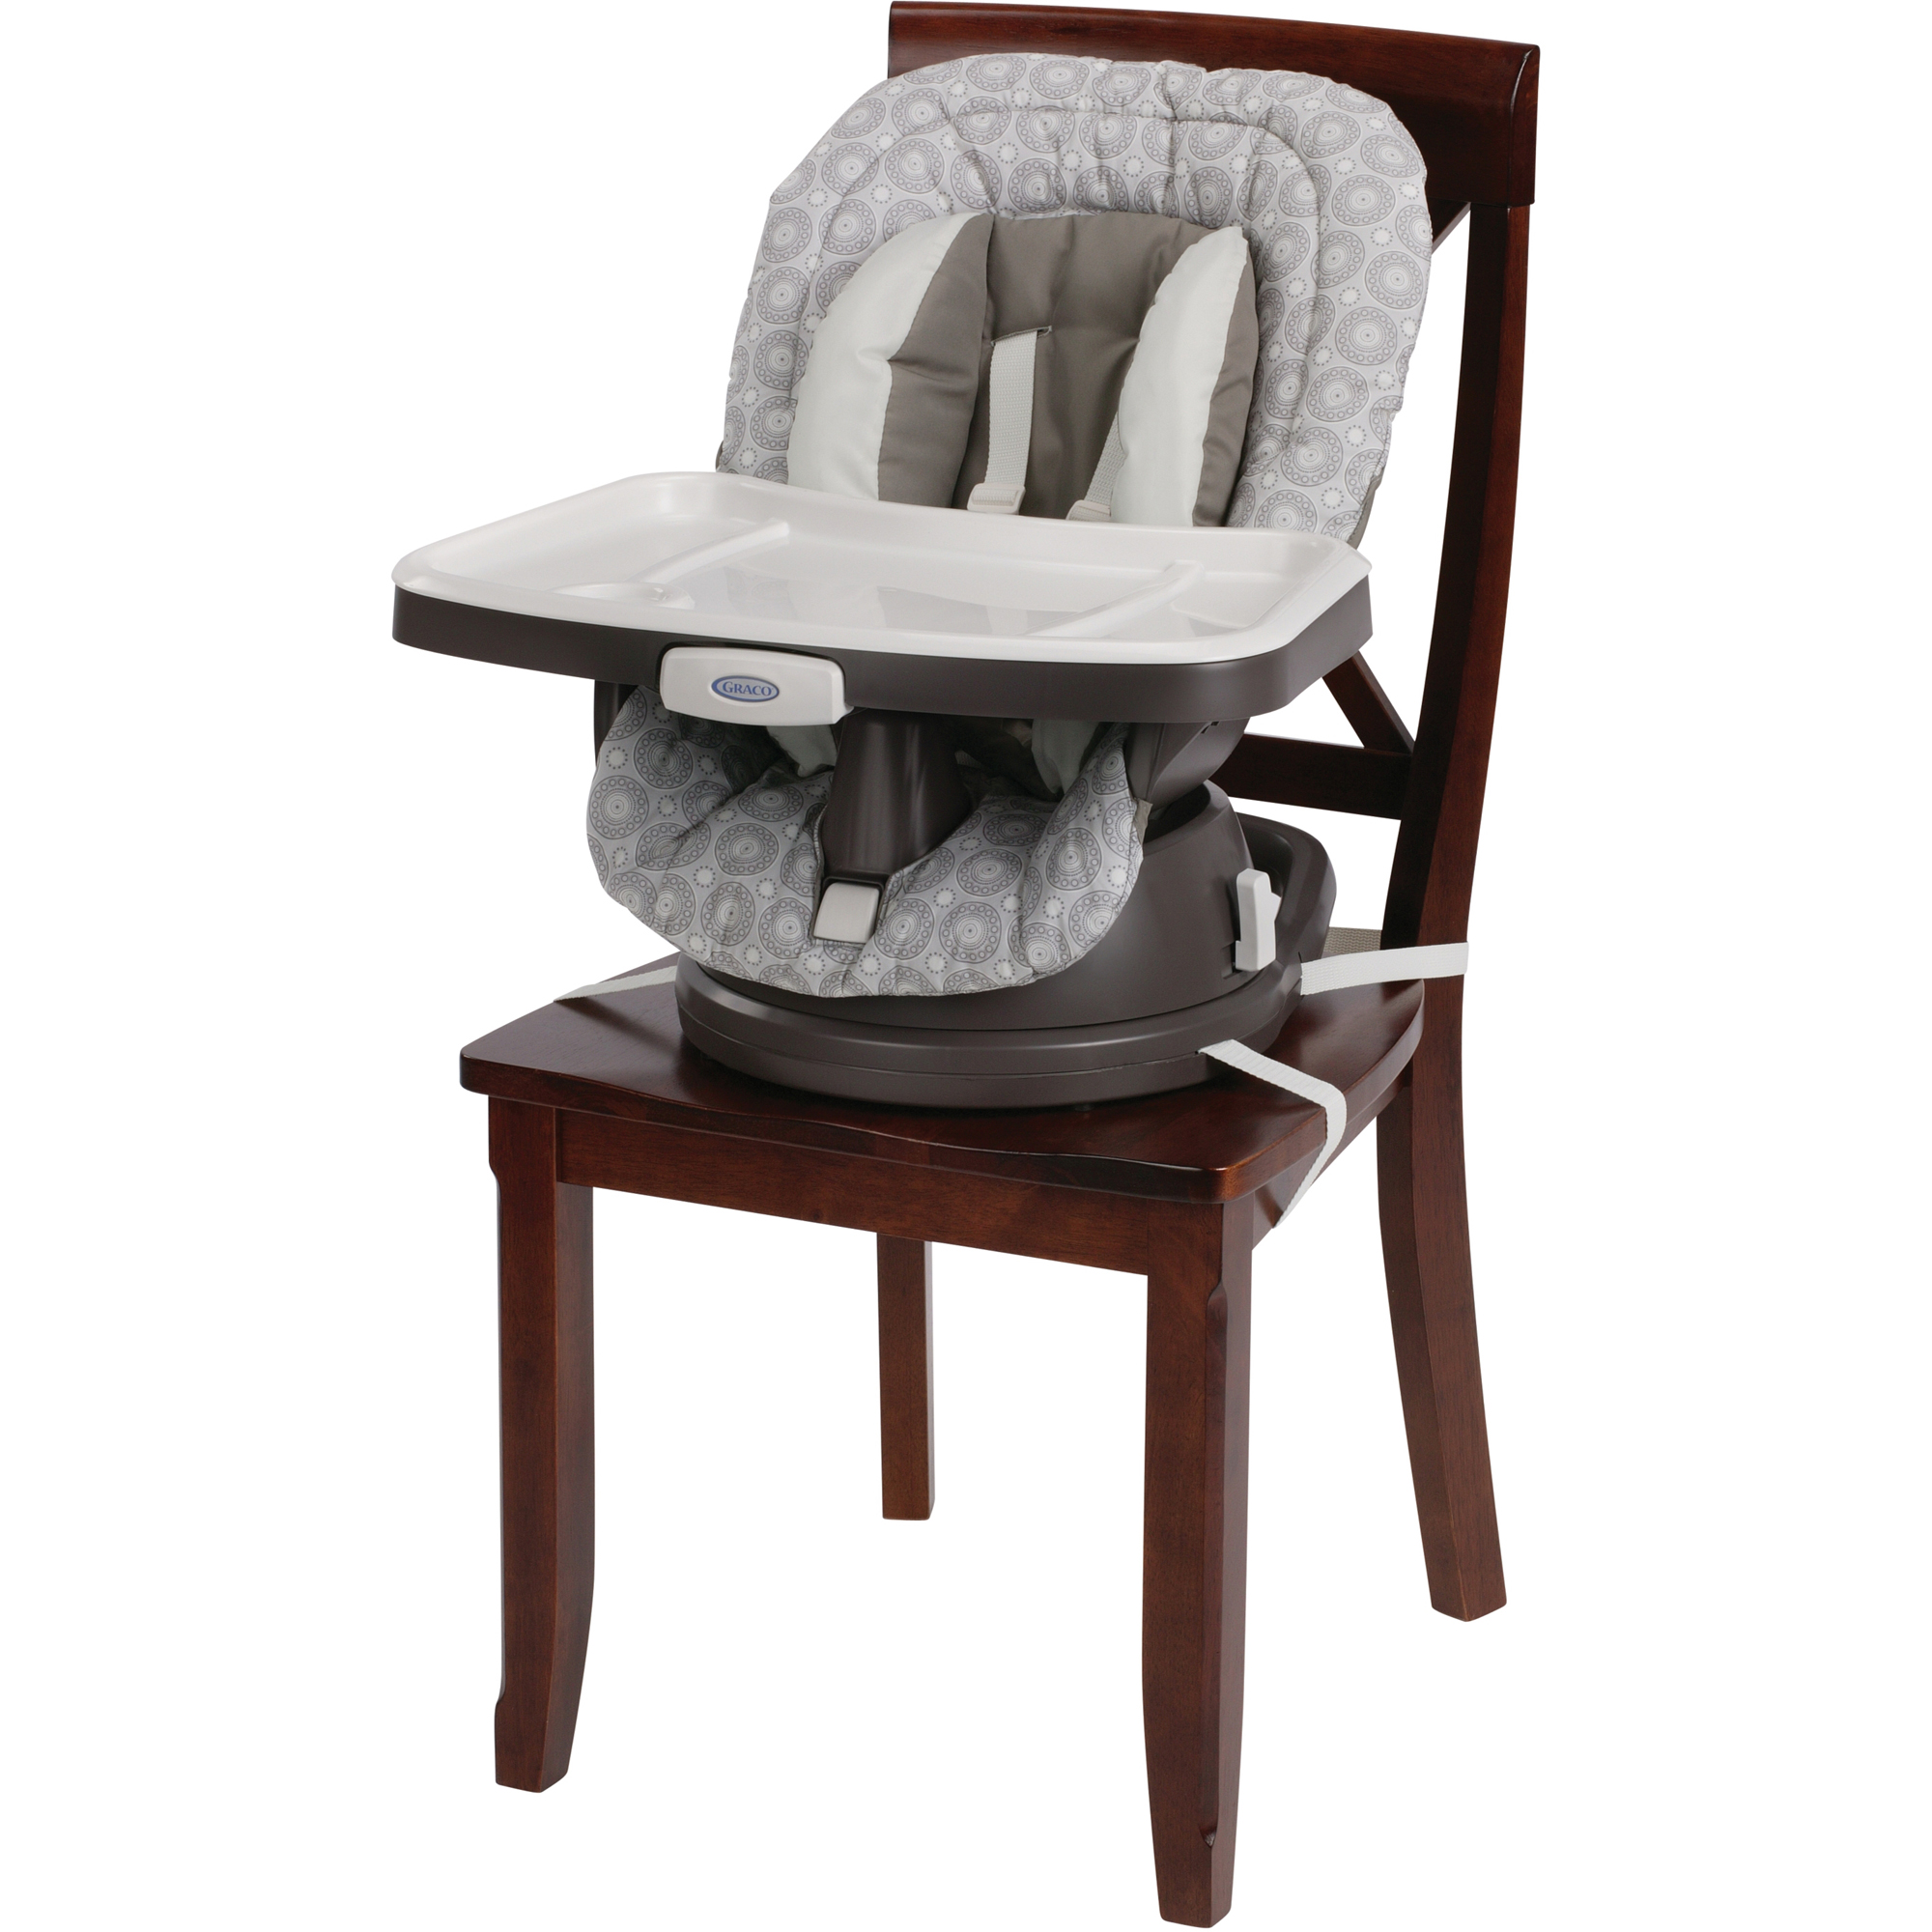 Gentil Graco SwiviSeat 3 In 1 High Chair Booster Seat, Abbington   Walmart.com